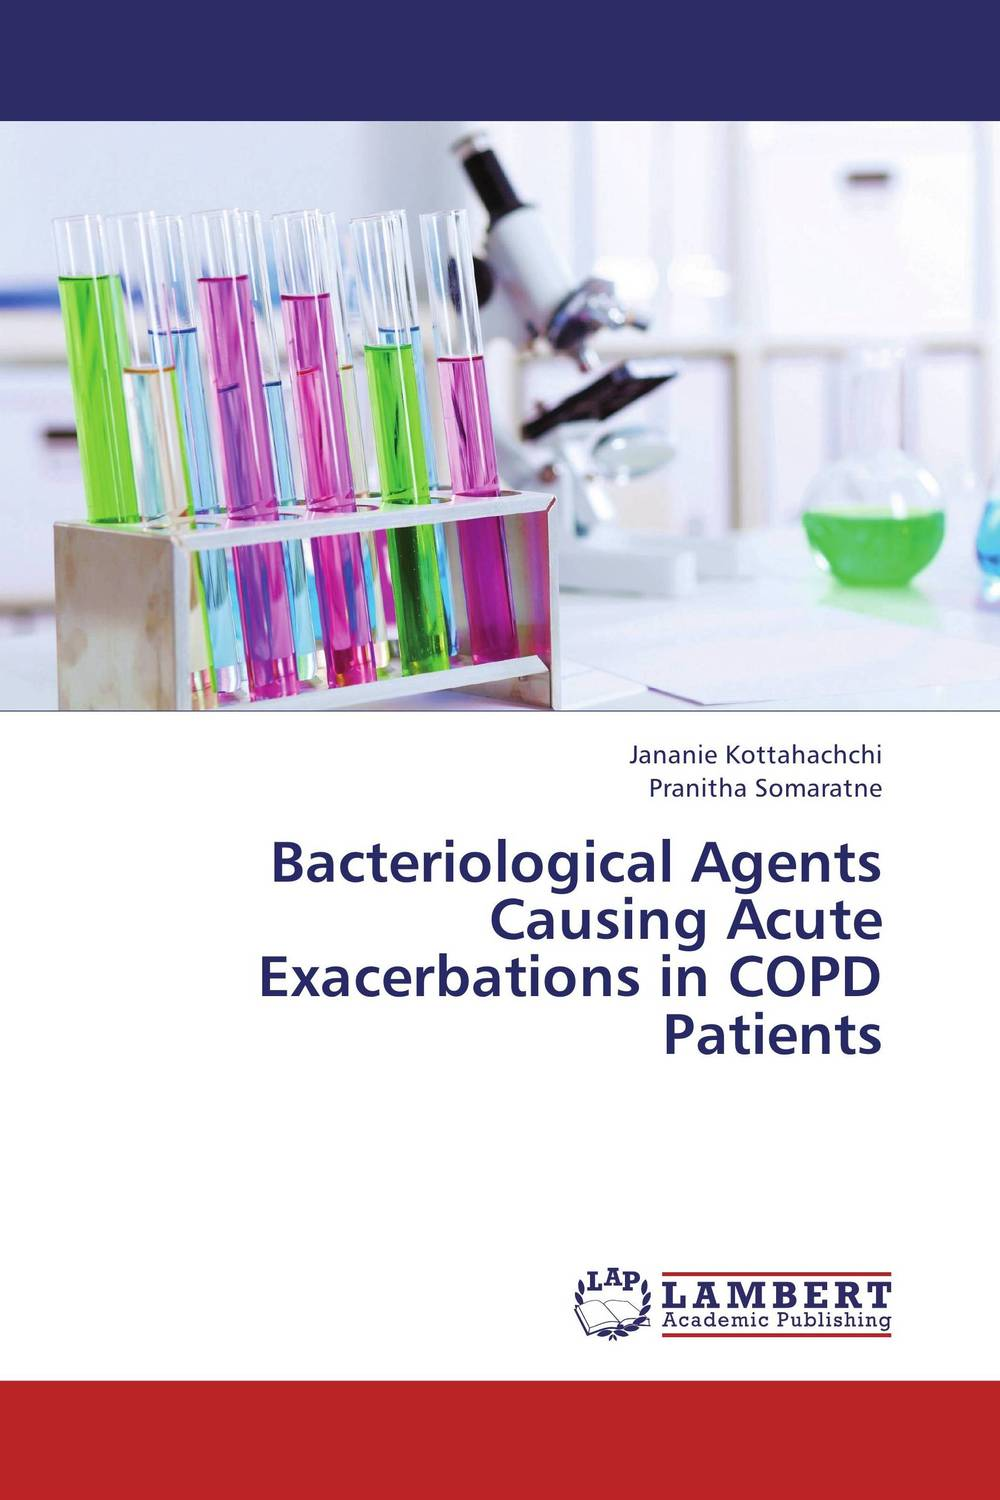 Bacteriological Agents Causing Acute Exacerbations in COPD Patients seduced by death – doctors patients